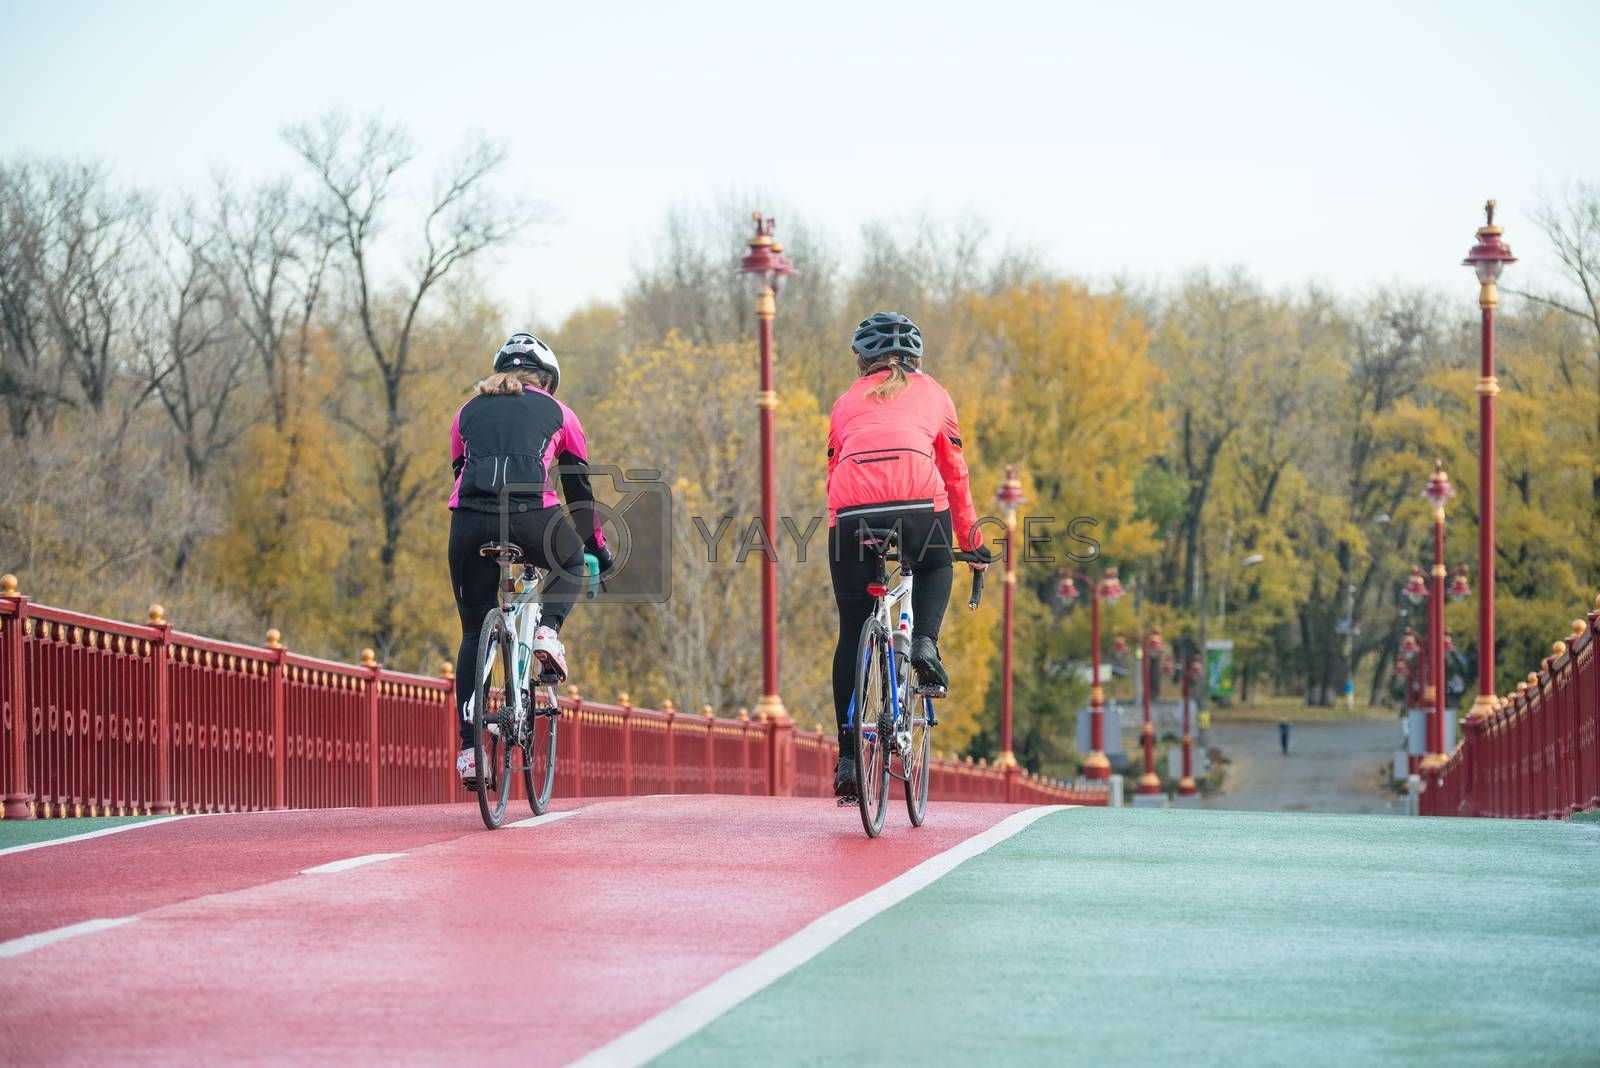 Two Young Female Cyclists Riding Road Bicycles on Bridge Bike Line in Cold Autumn Day. Healthy Lifestyle Concept. by maxpro